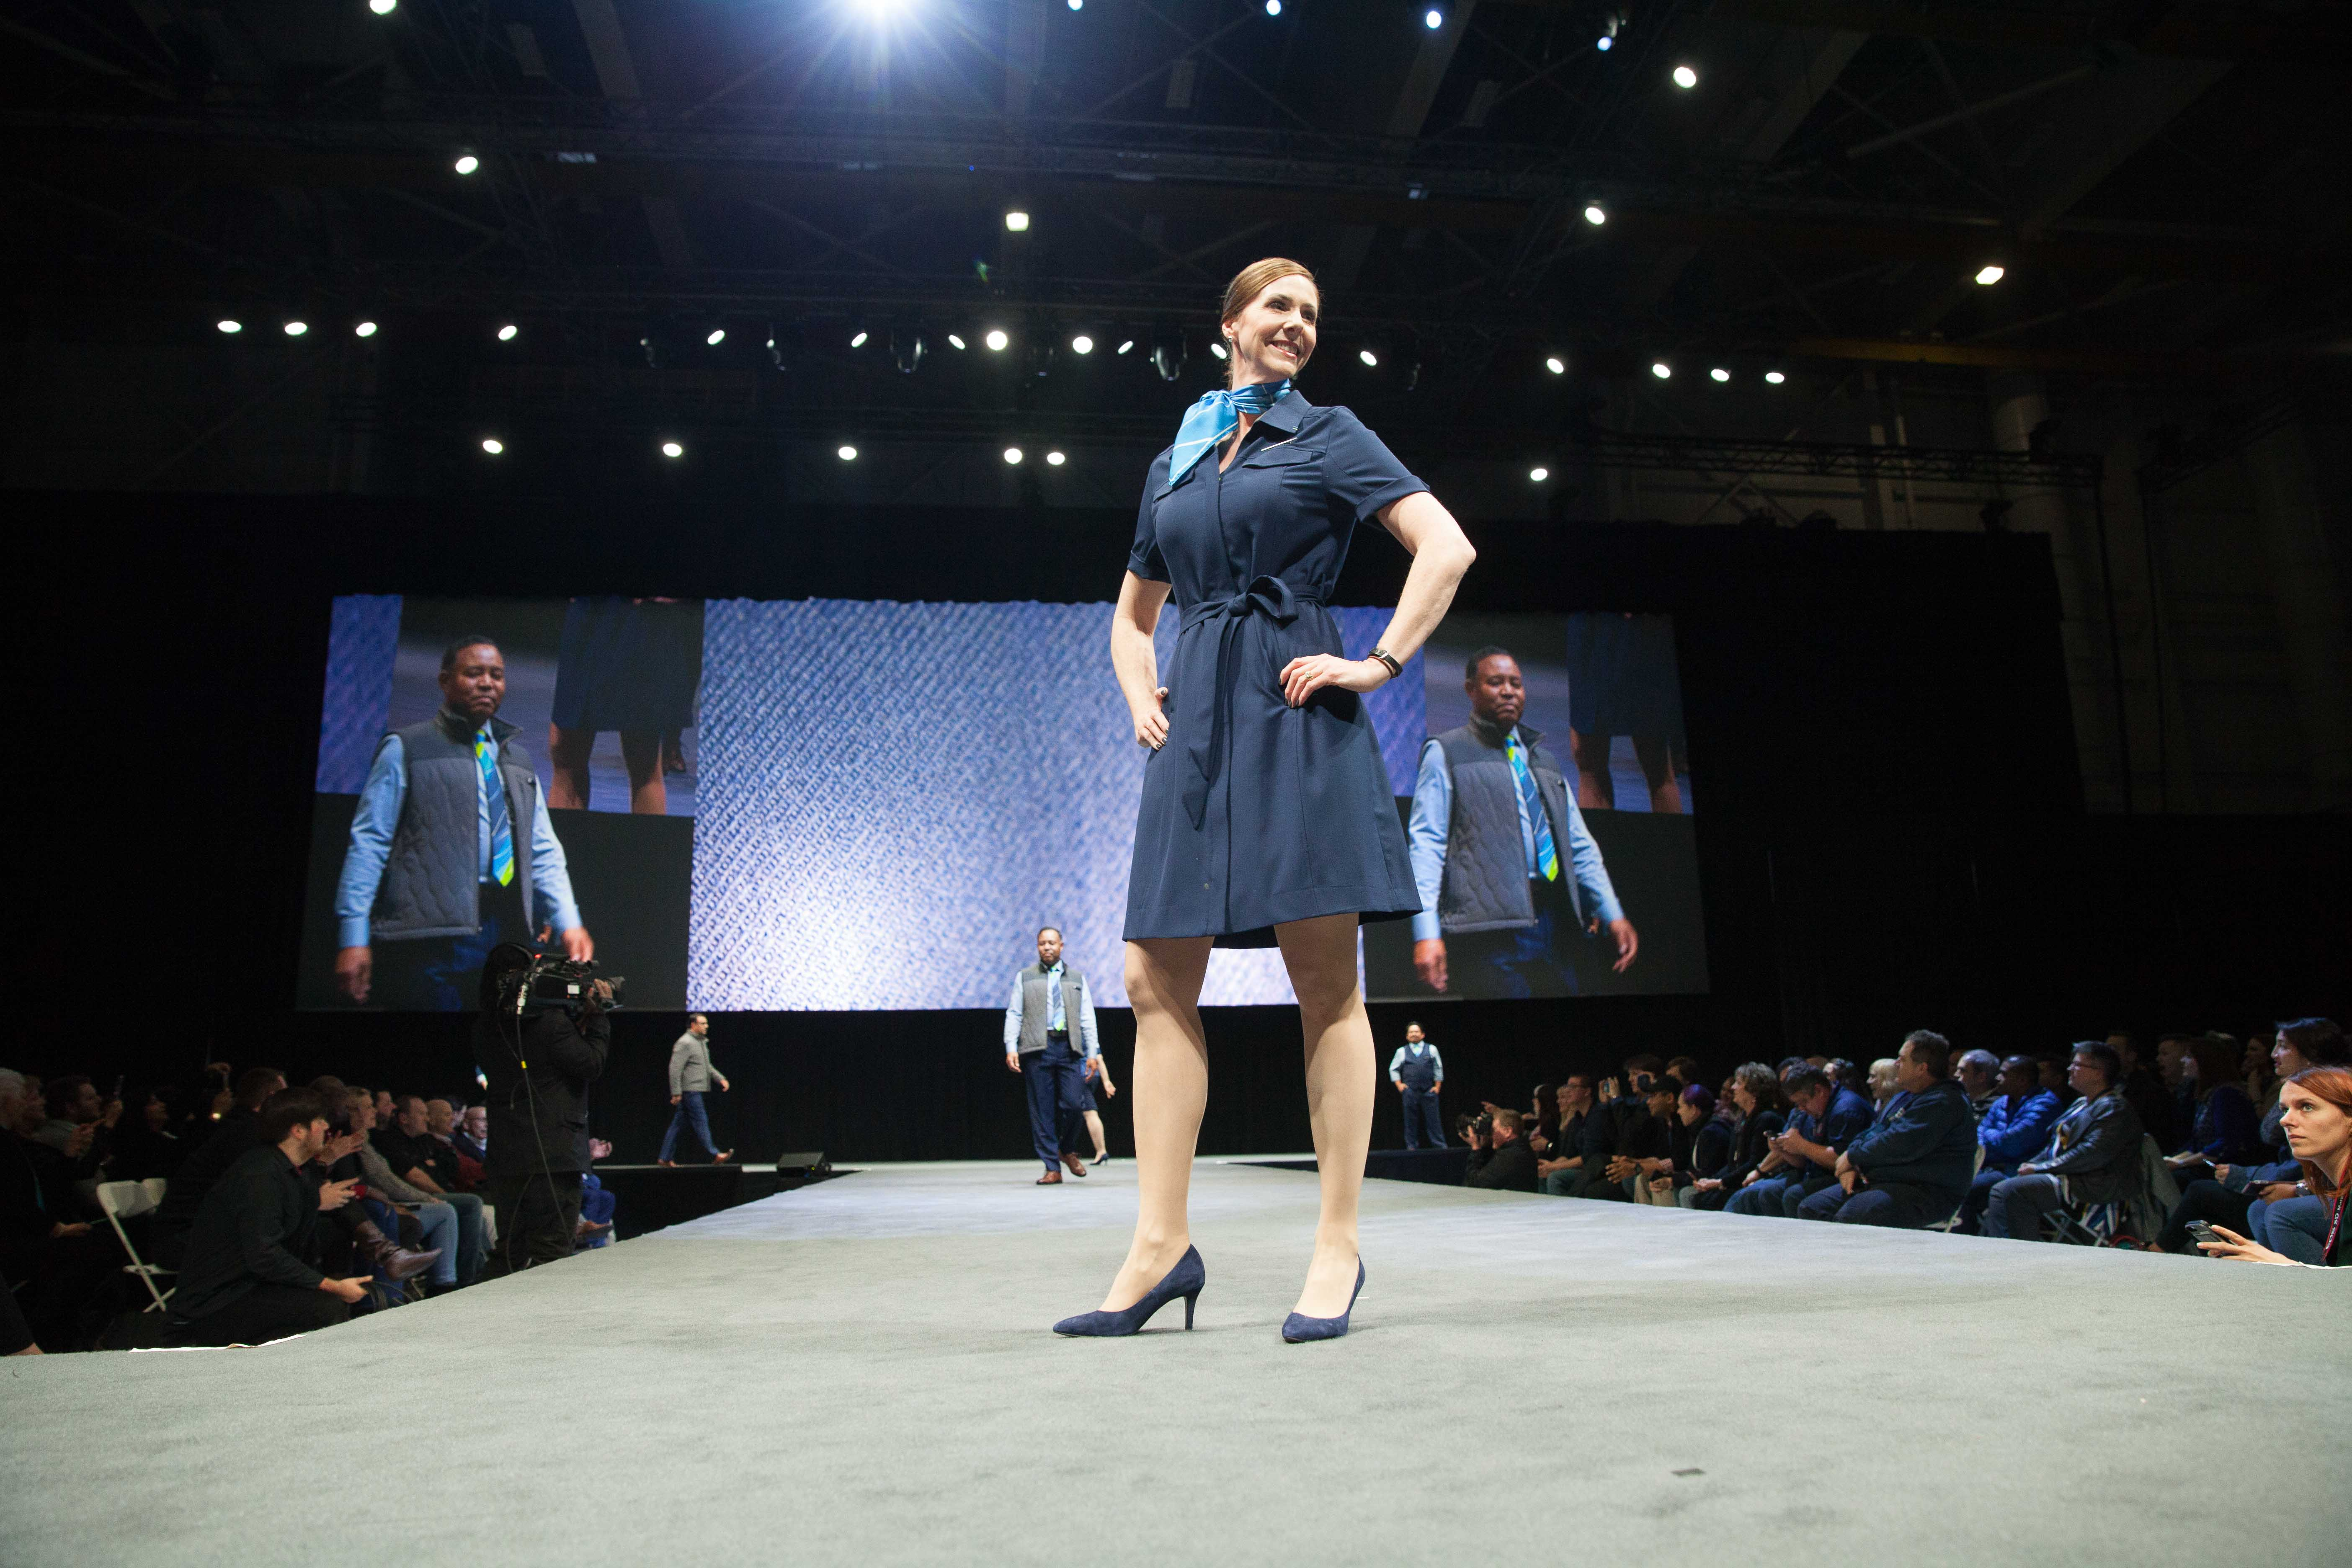 Alaska Airlines' New Uniforms by Designer Luly Yang Are ...